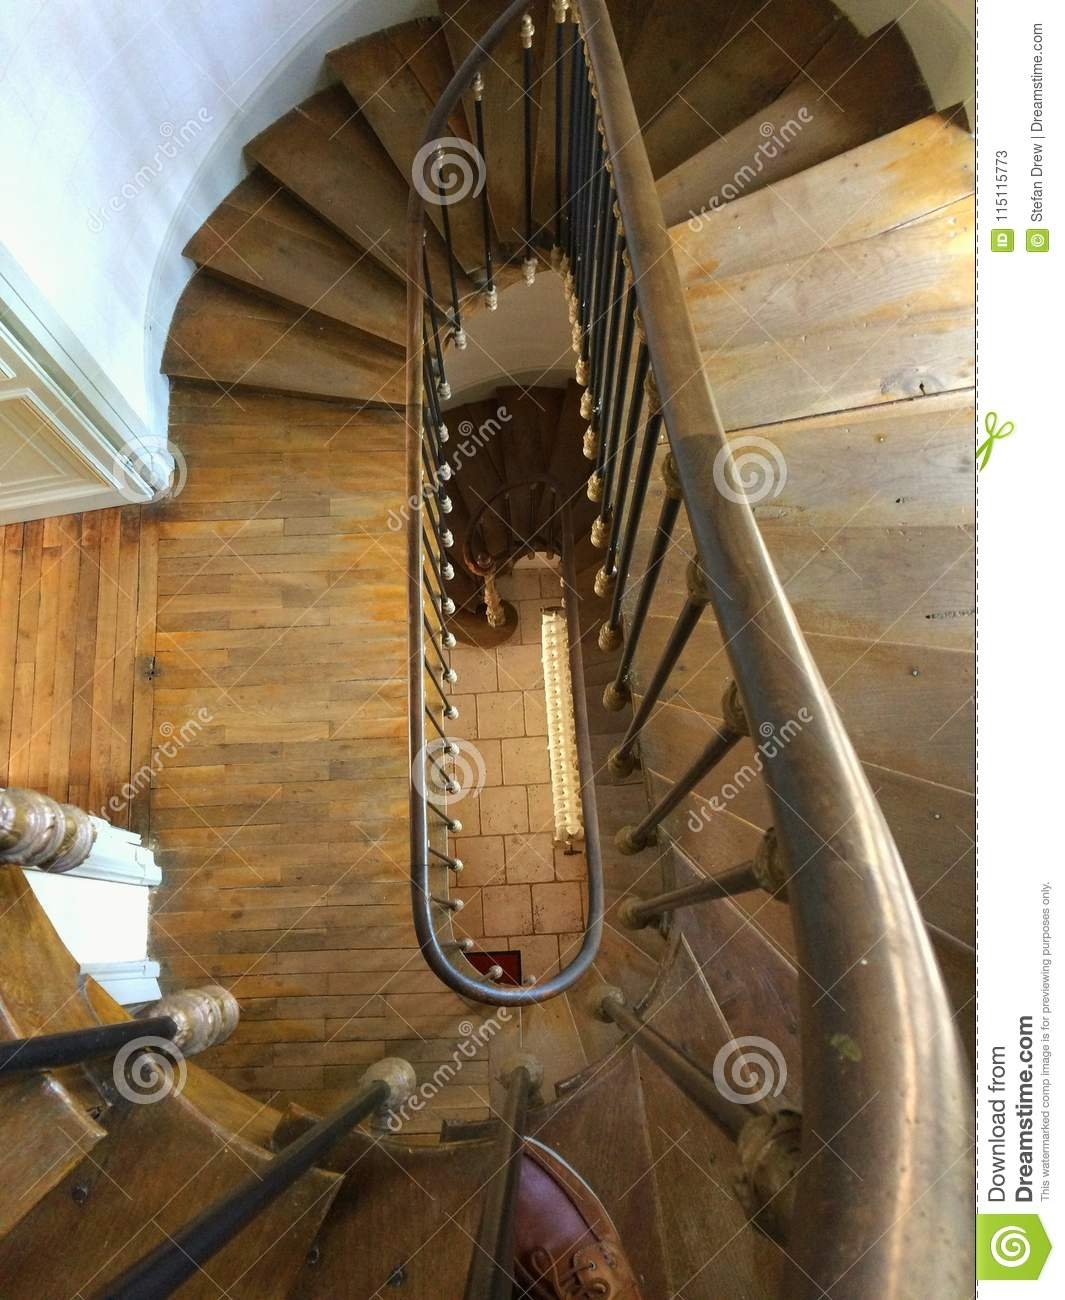 Elongated Spiral Staircase Stock Image Image Of Elongated 115115773 | Spiral Staircase Wooden Steps | Tiny House | Wrought Iron | Rustic | Creative | 2 Story